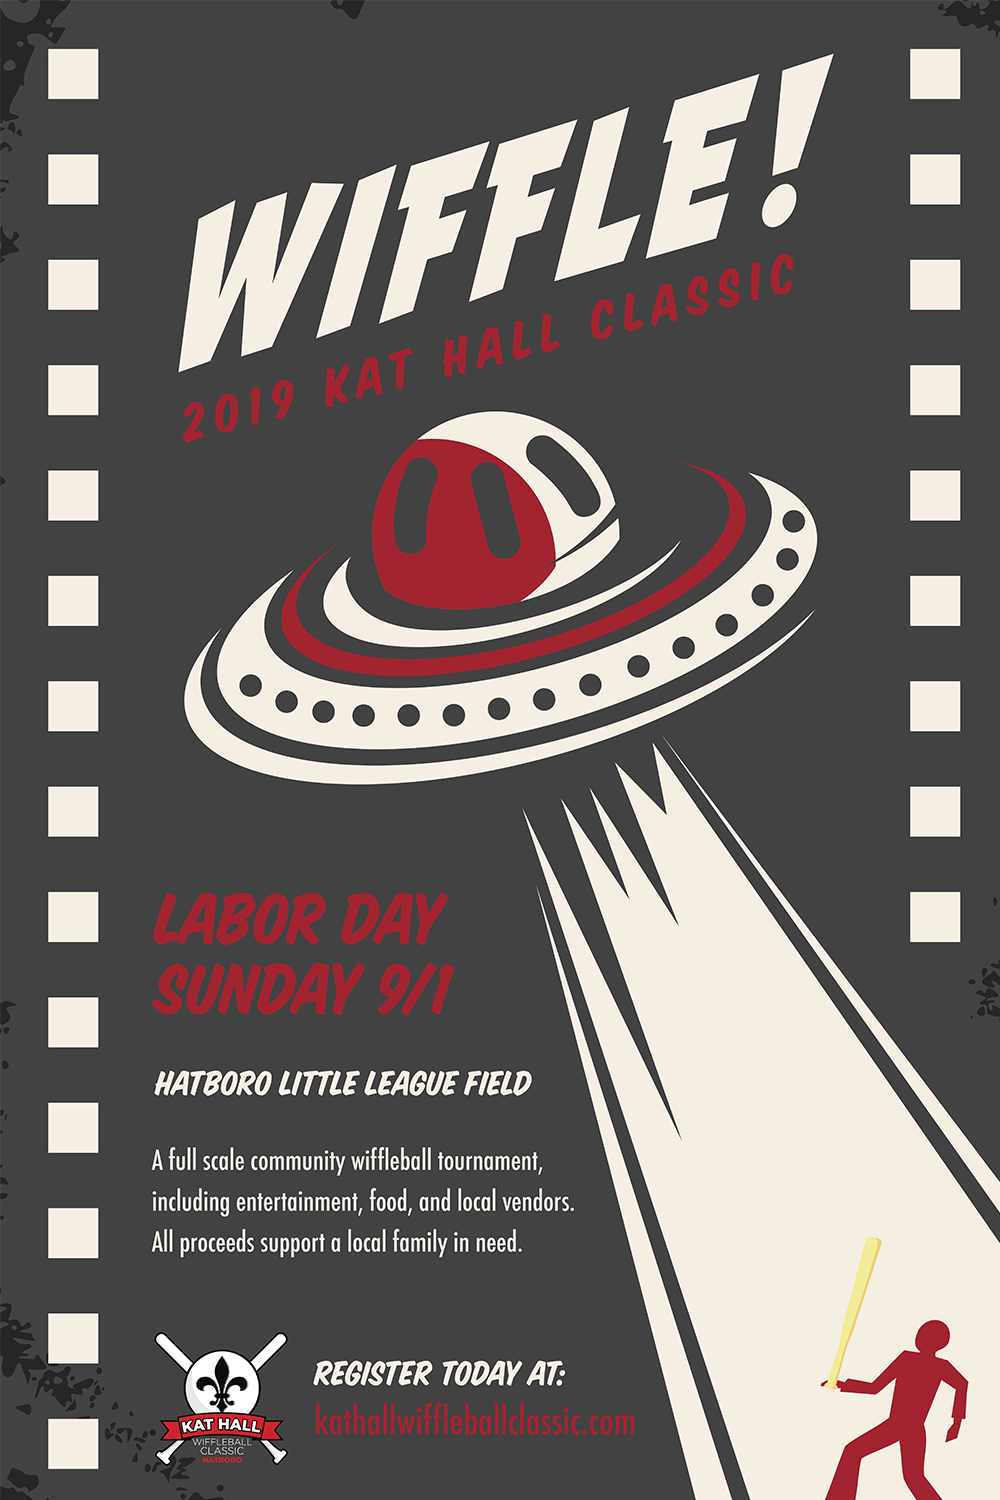 2019 Kat Hall Wiffleball Poster ULTRA.png